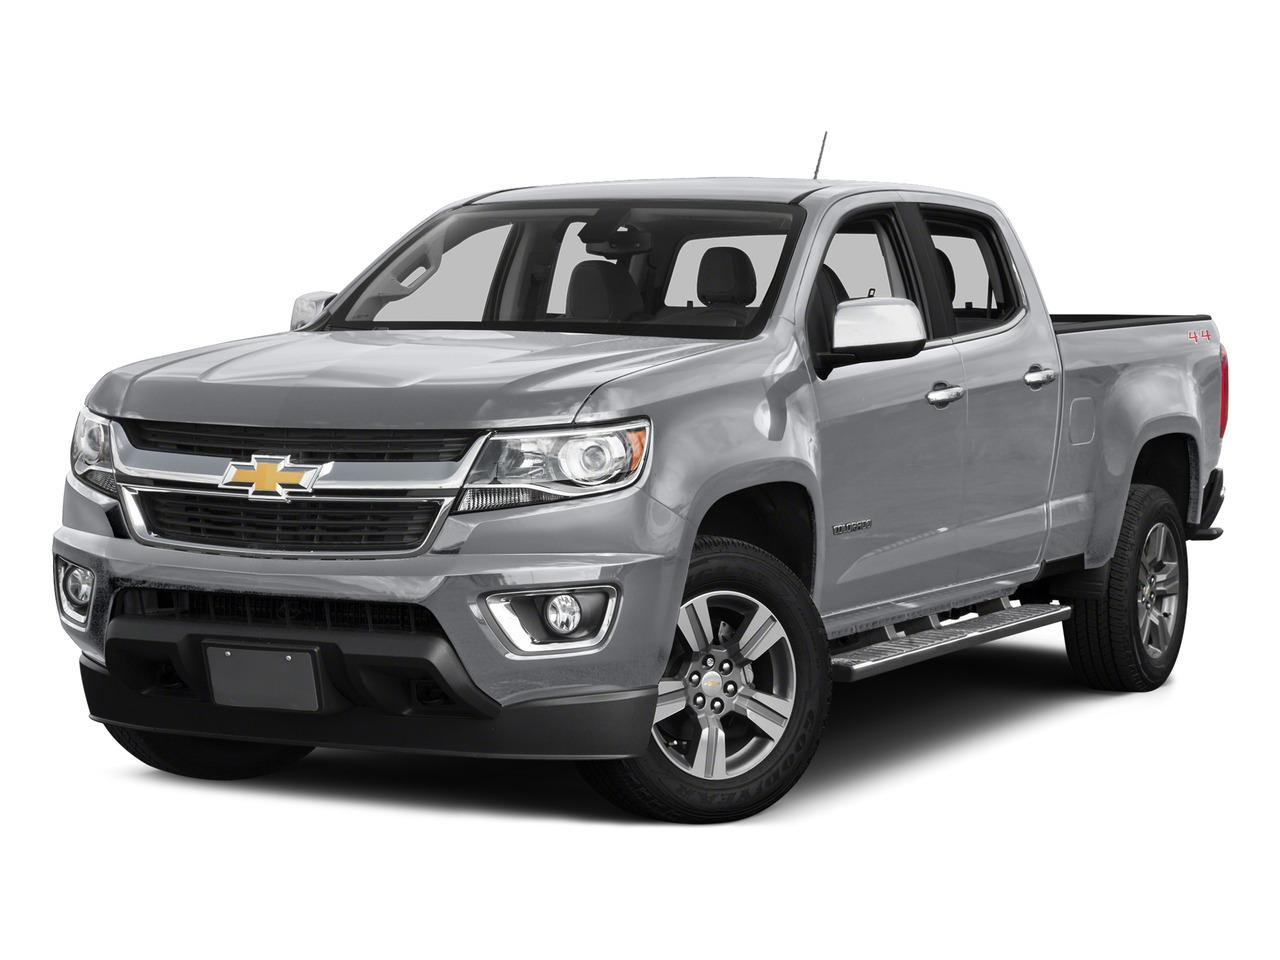 2015 Chevrolet Colorado Vehicle Photo in Brownsville, TX 78520